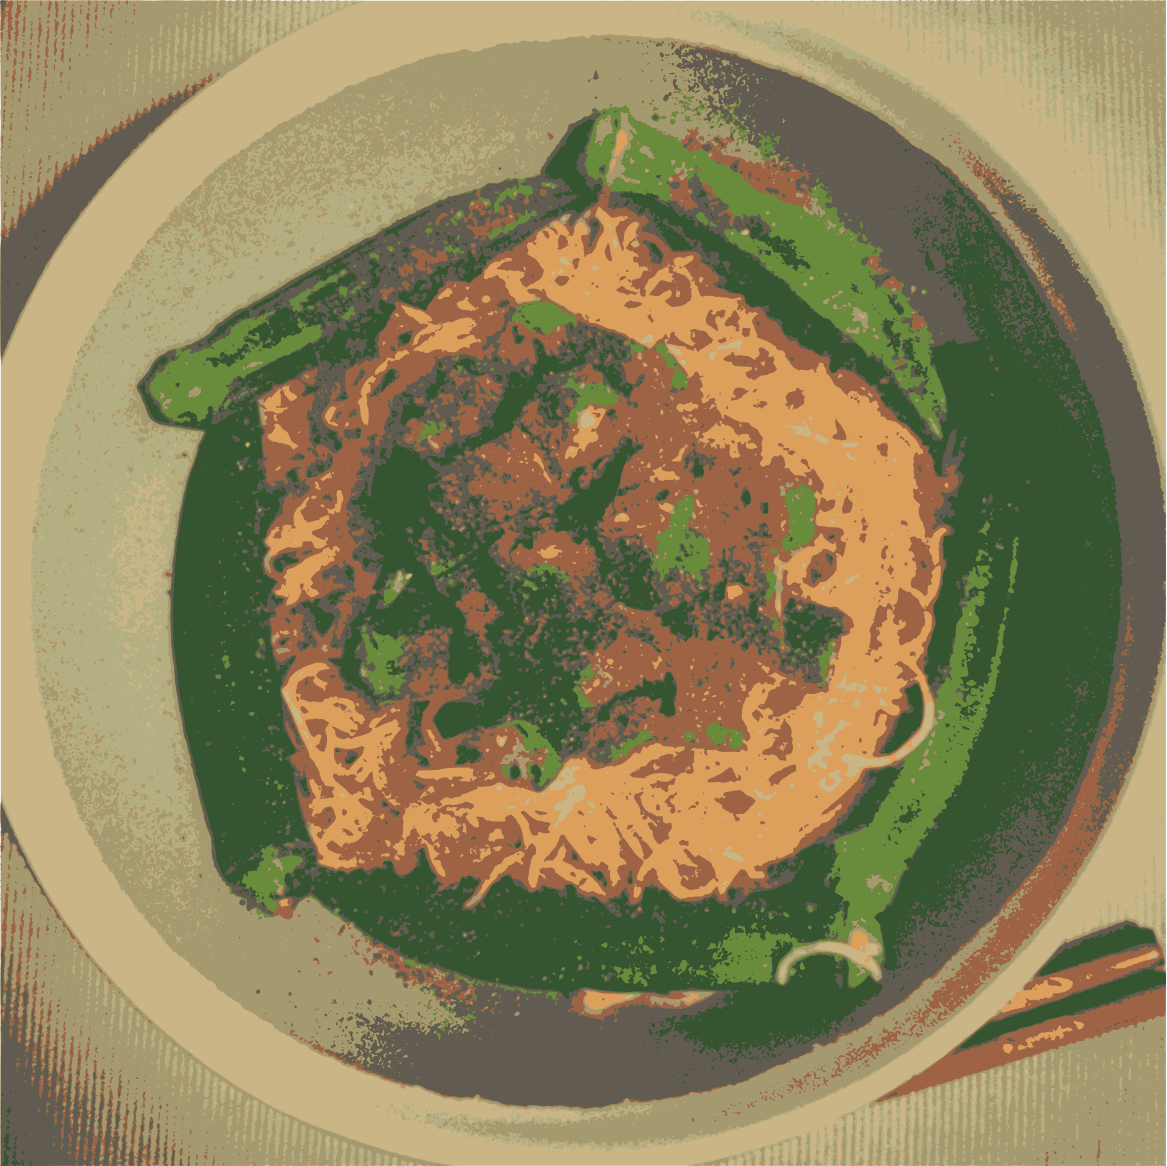 okra shrimp noodle  by jykhui